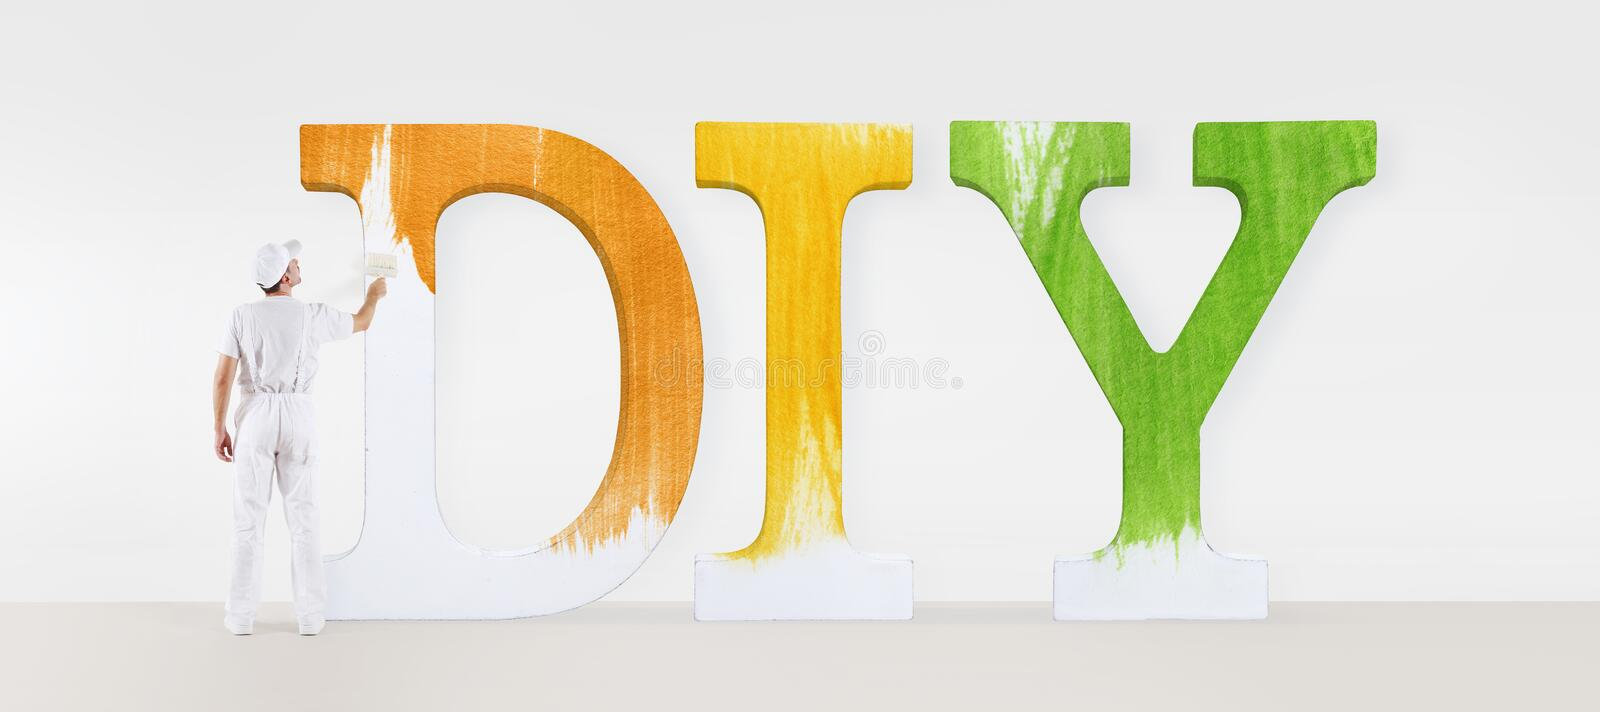 Painter man with paint brush, painting a text diy on white blank royalty free stock photo